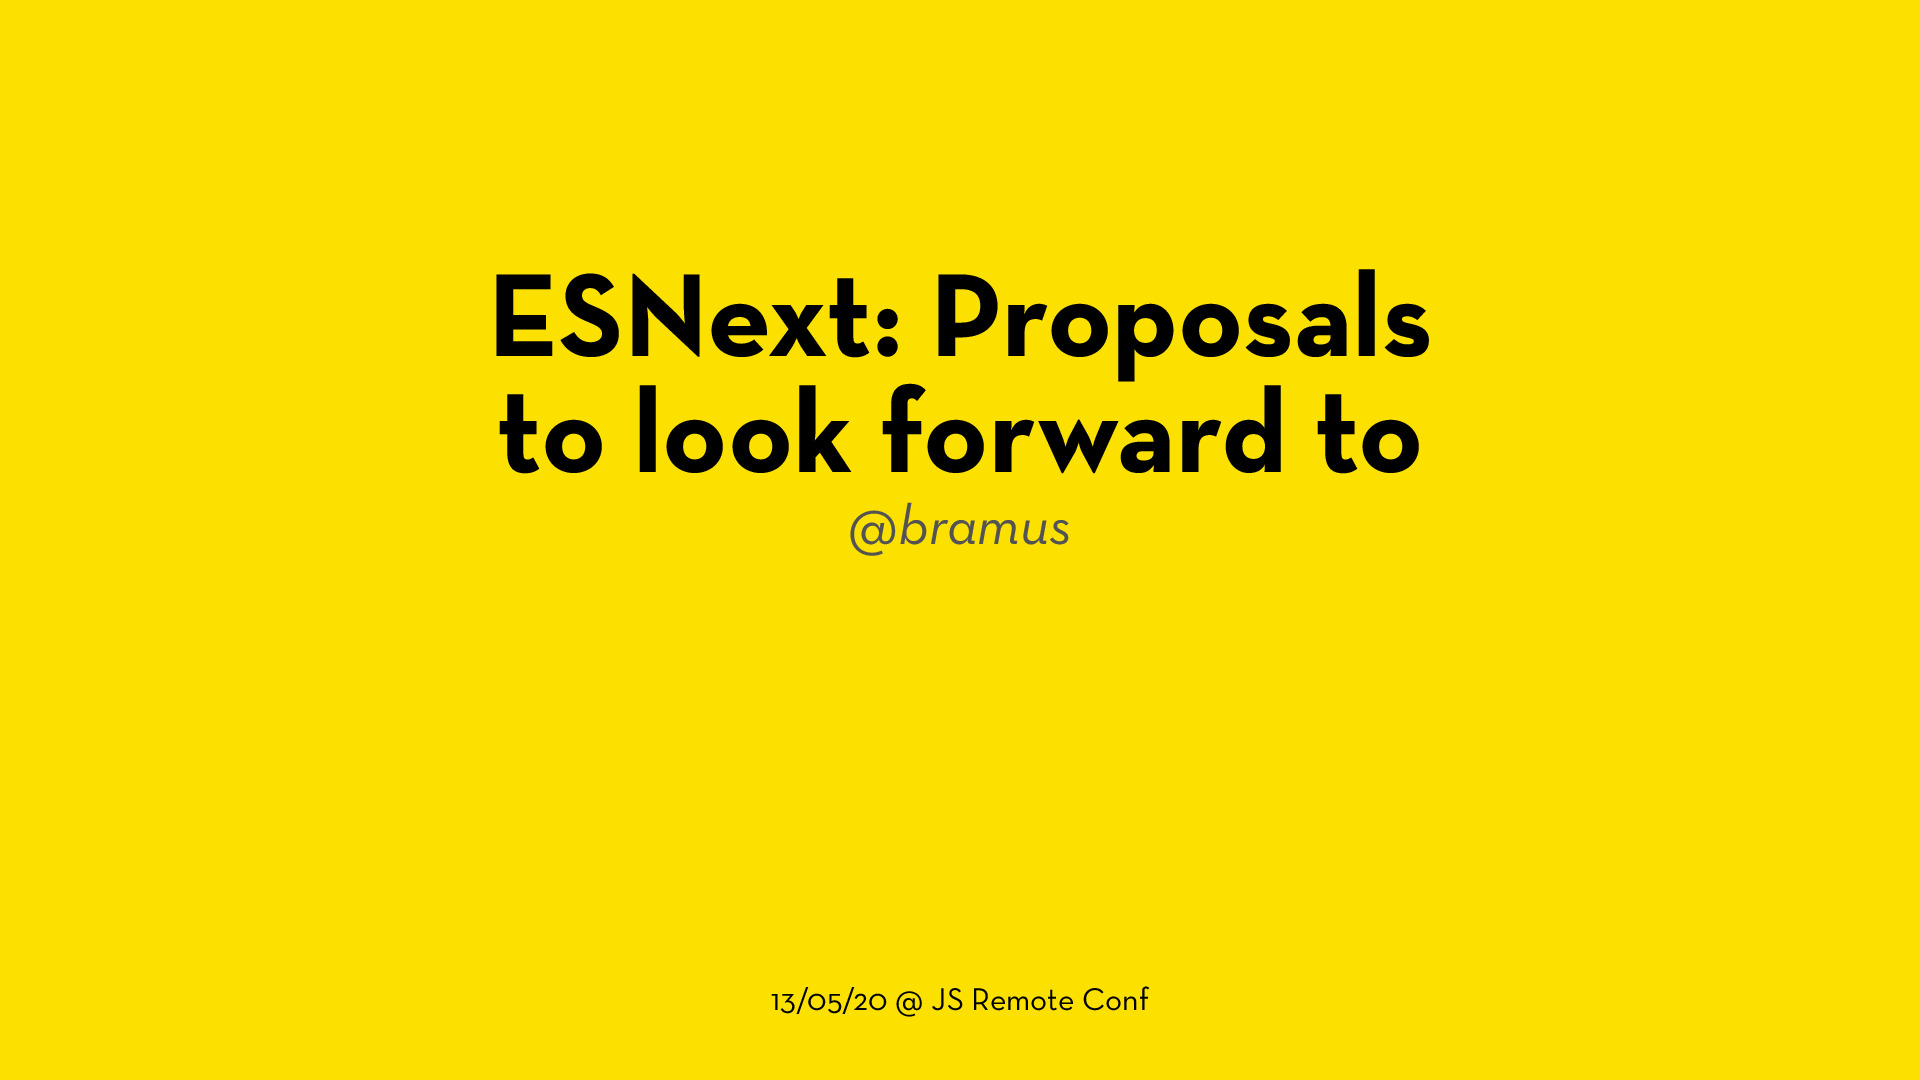 ESNext: Proposals to look forward to (2020.05.13 @ JavaScript Remote Conf)